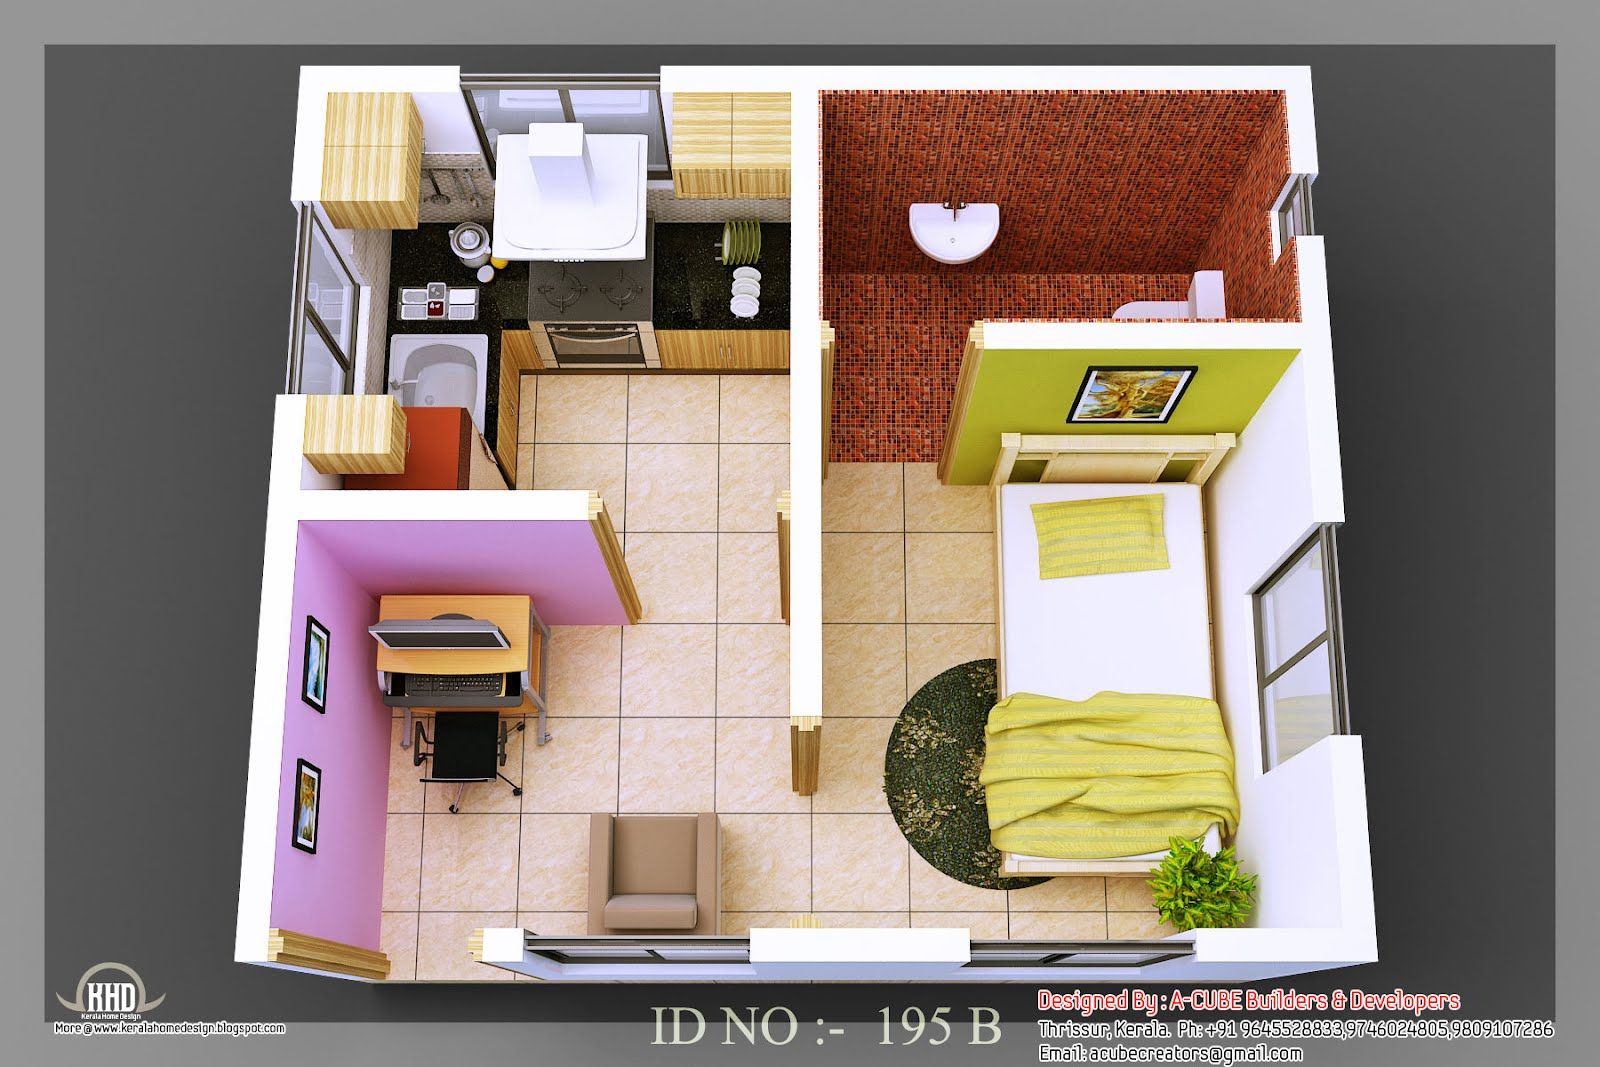 isometric views small house plans kerala home design floor information isometric small house plans - Small Home Designs